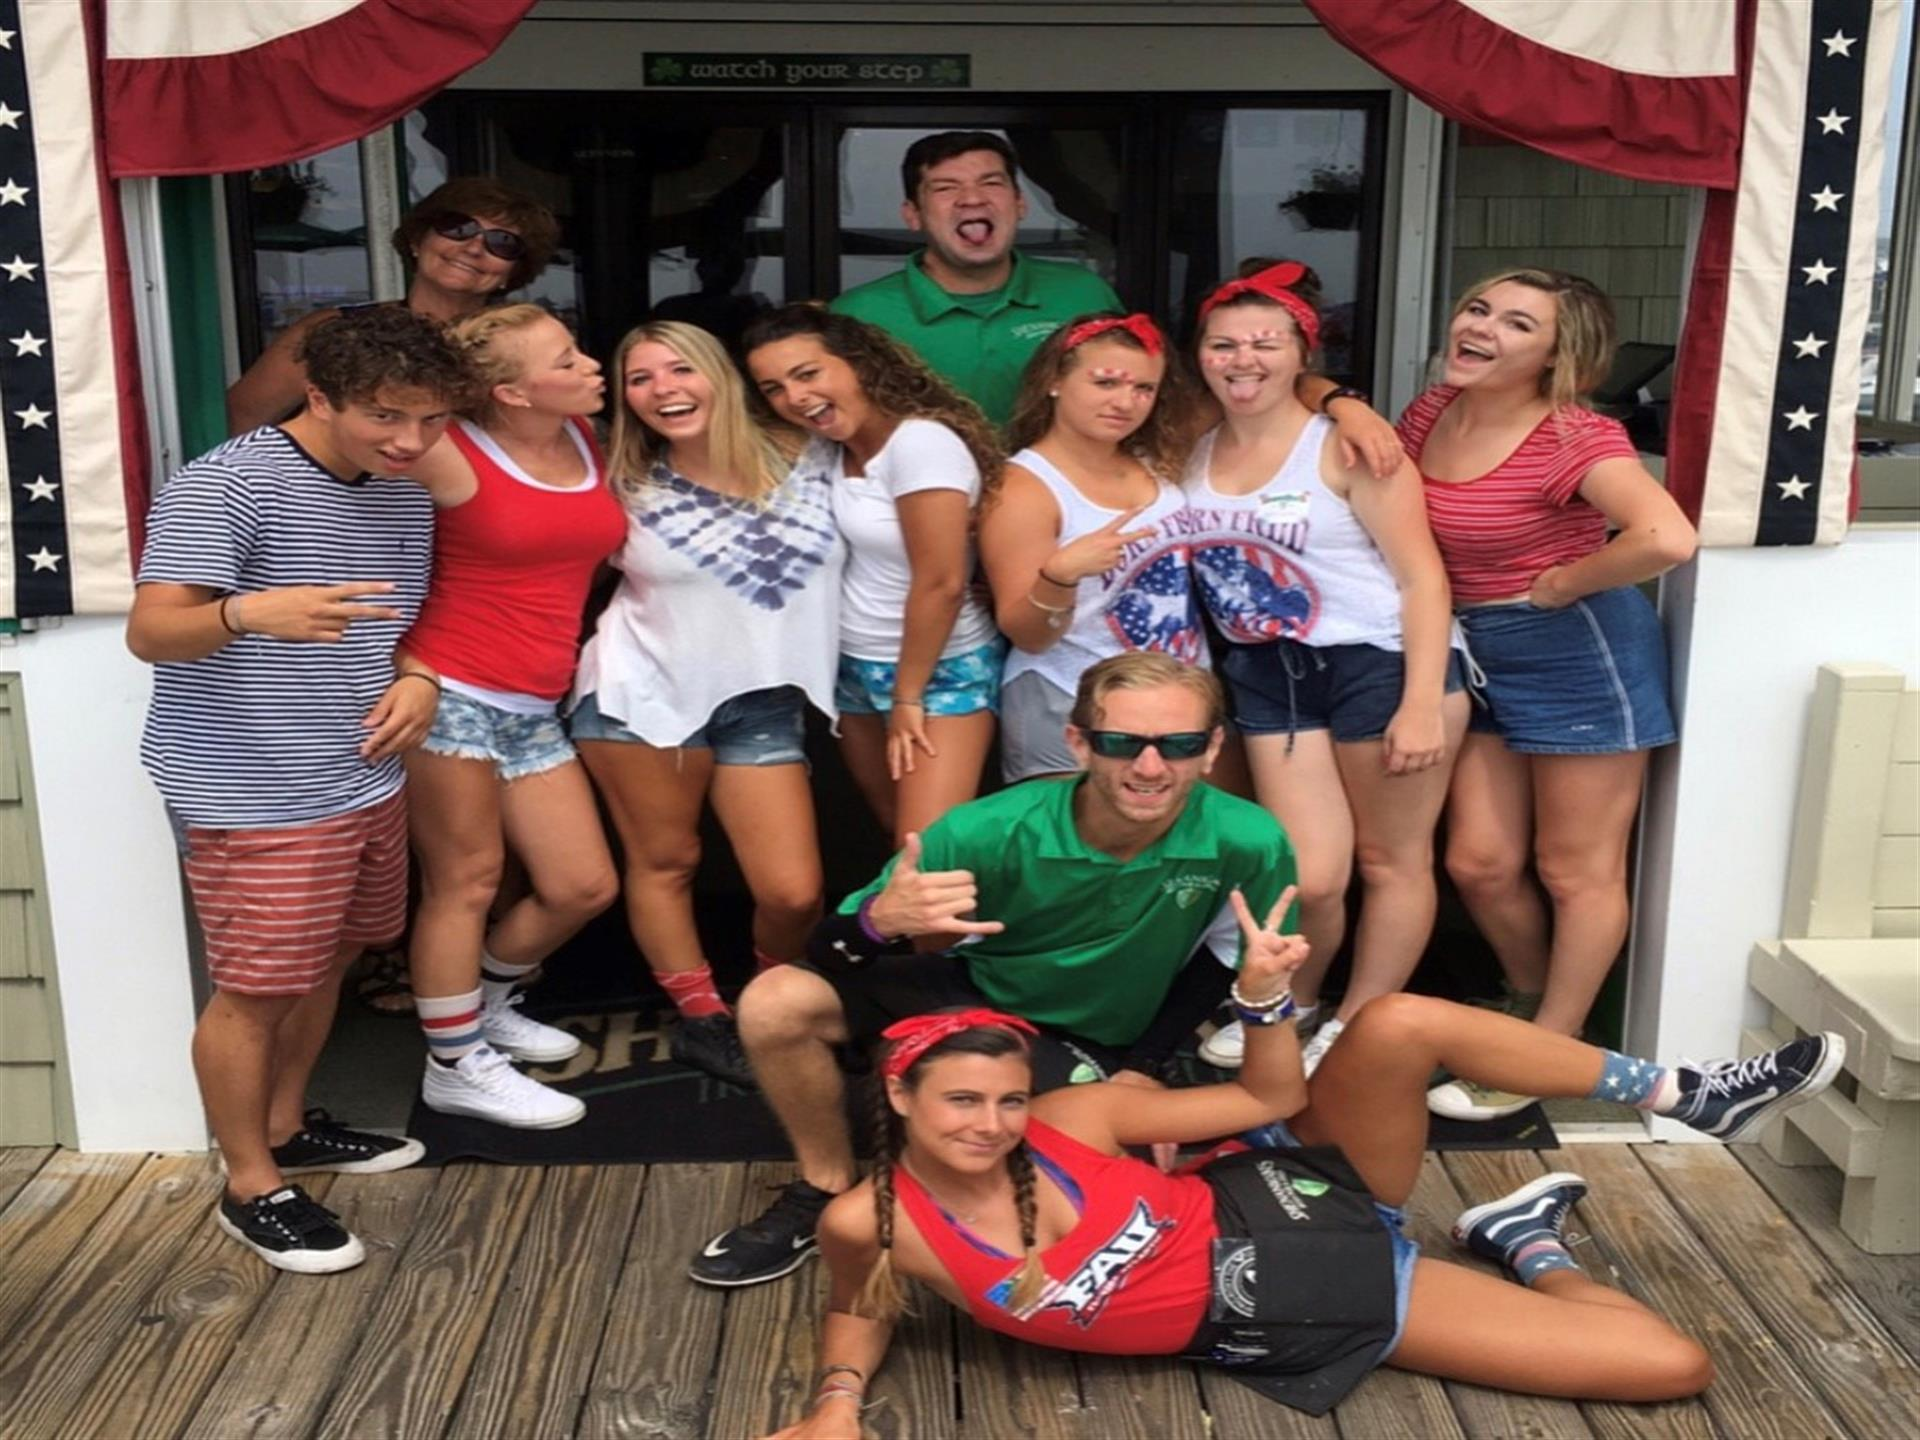 Staff of Shenanigan's dressed in red, white and blue and standing outside on the boardwalk.